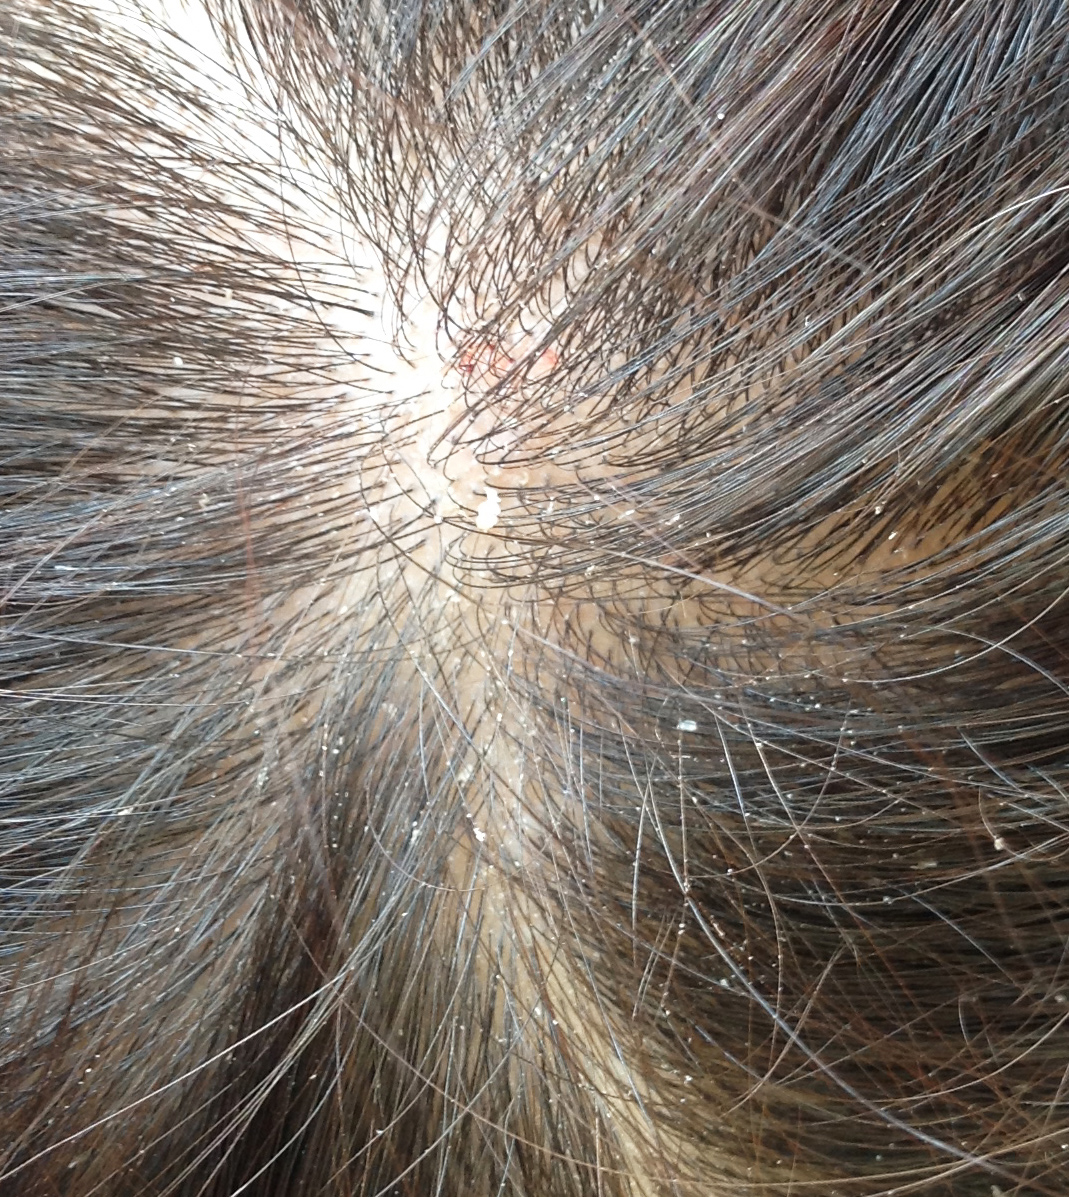 how to detect head lice in adults